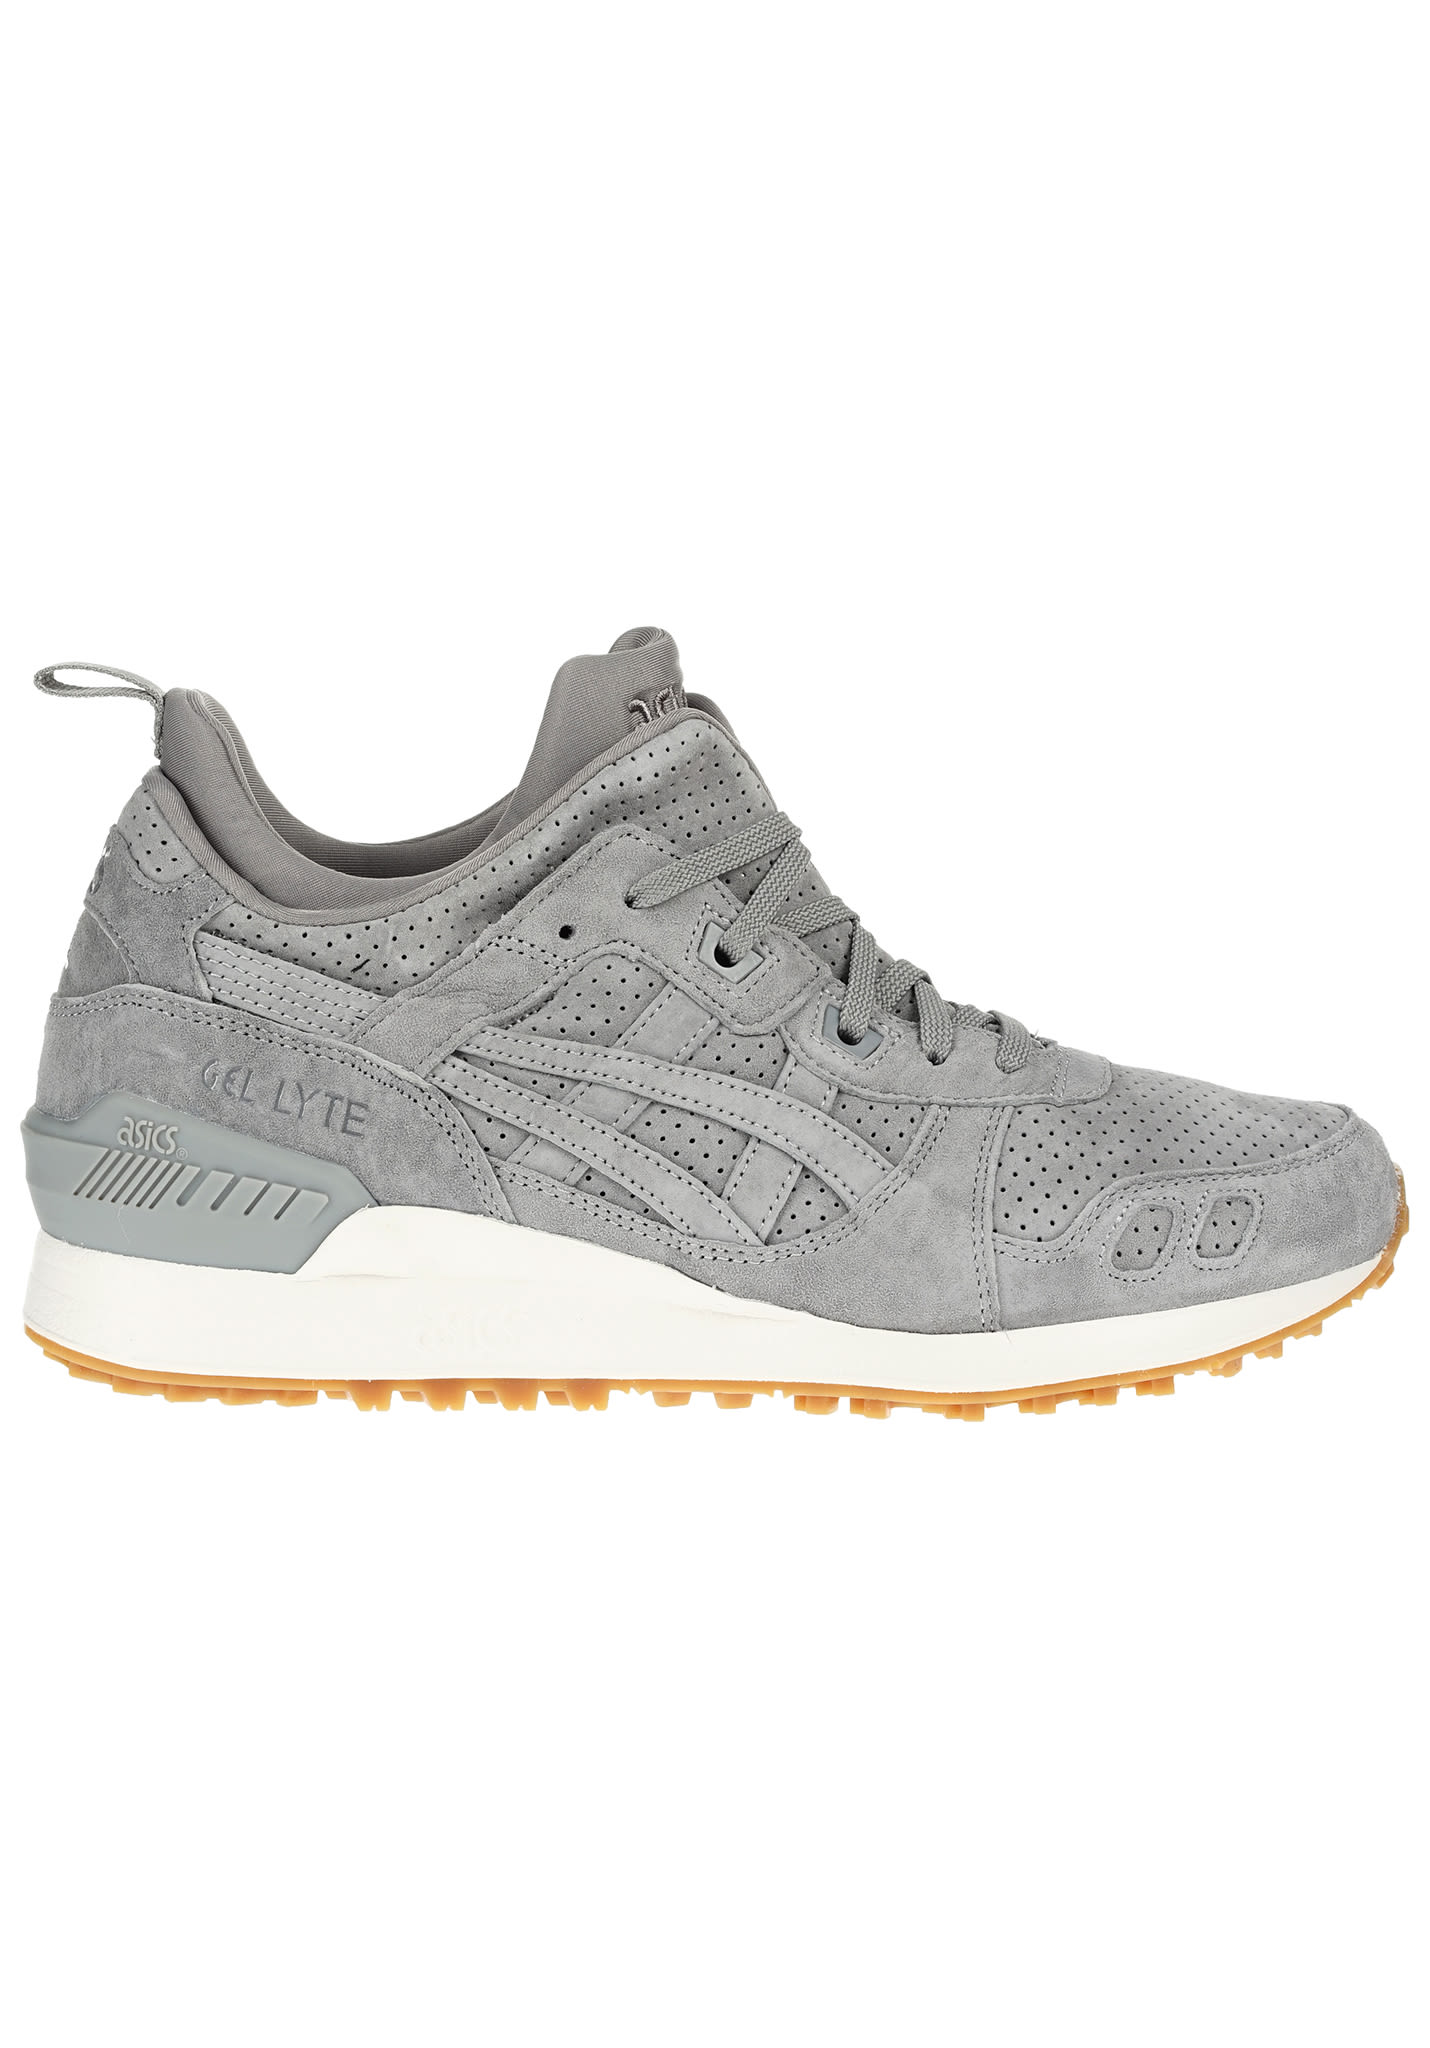 31187666f93e Asics Tiger Gel-Lyte MT - Sneakers for Men - Grey - Planet Sports